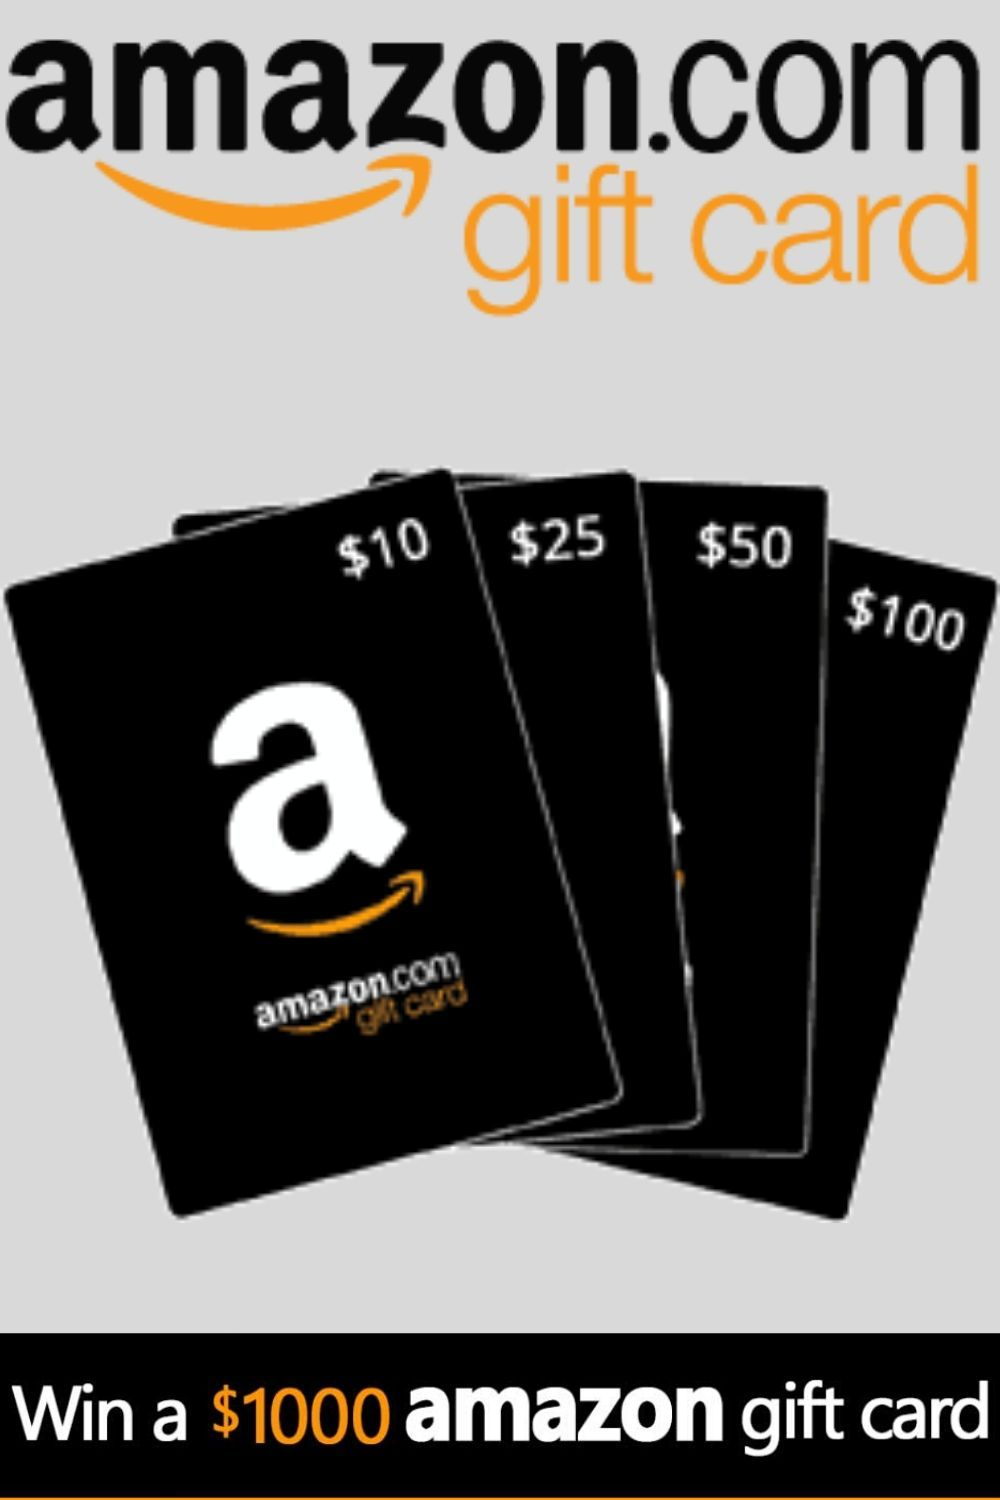 Amazon Win A Free Gift Card No Survey In 2020 Amazon Gift Card Free Amazon Gift Cards Amazon Gifts